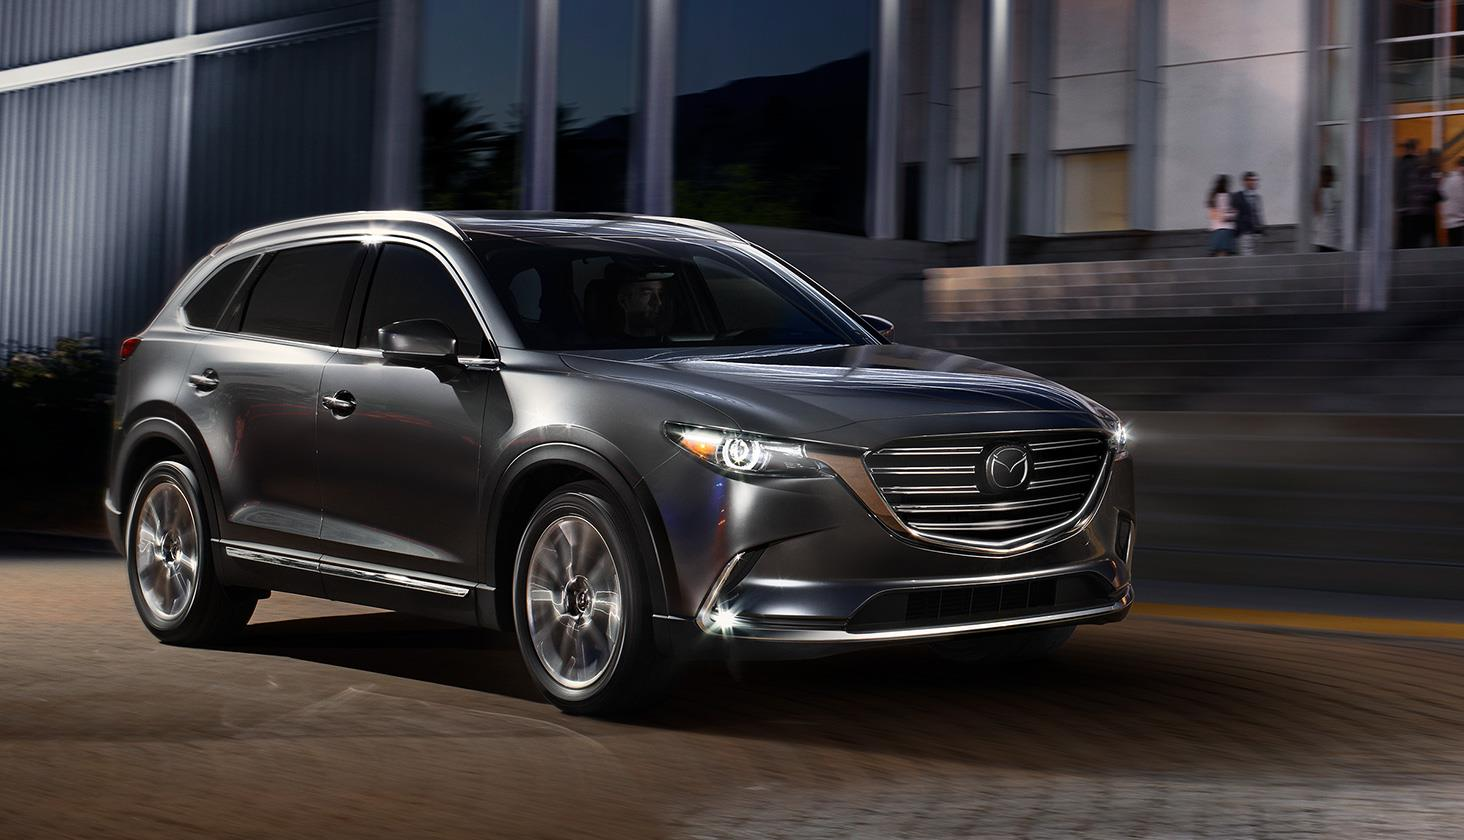 Mazda CX-9 Racks Up Yet Another Award For Best Large Utility - Cardinale Mazda